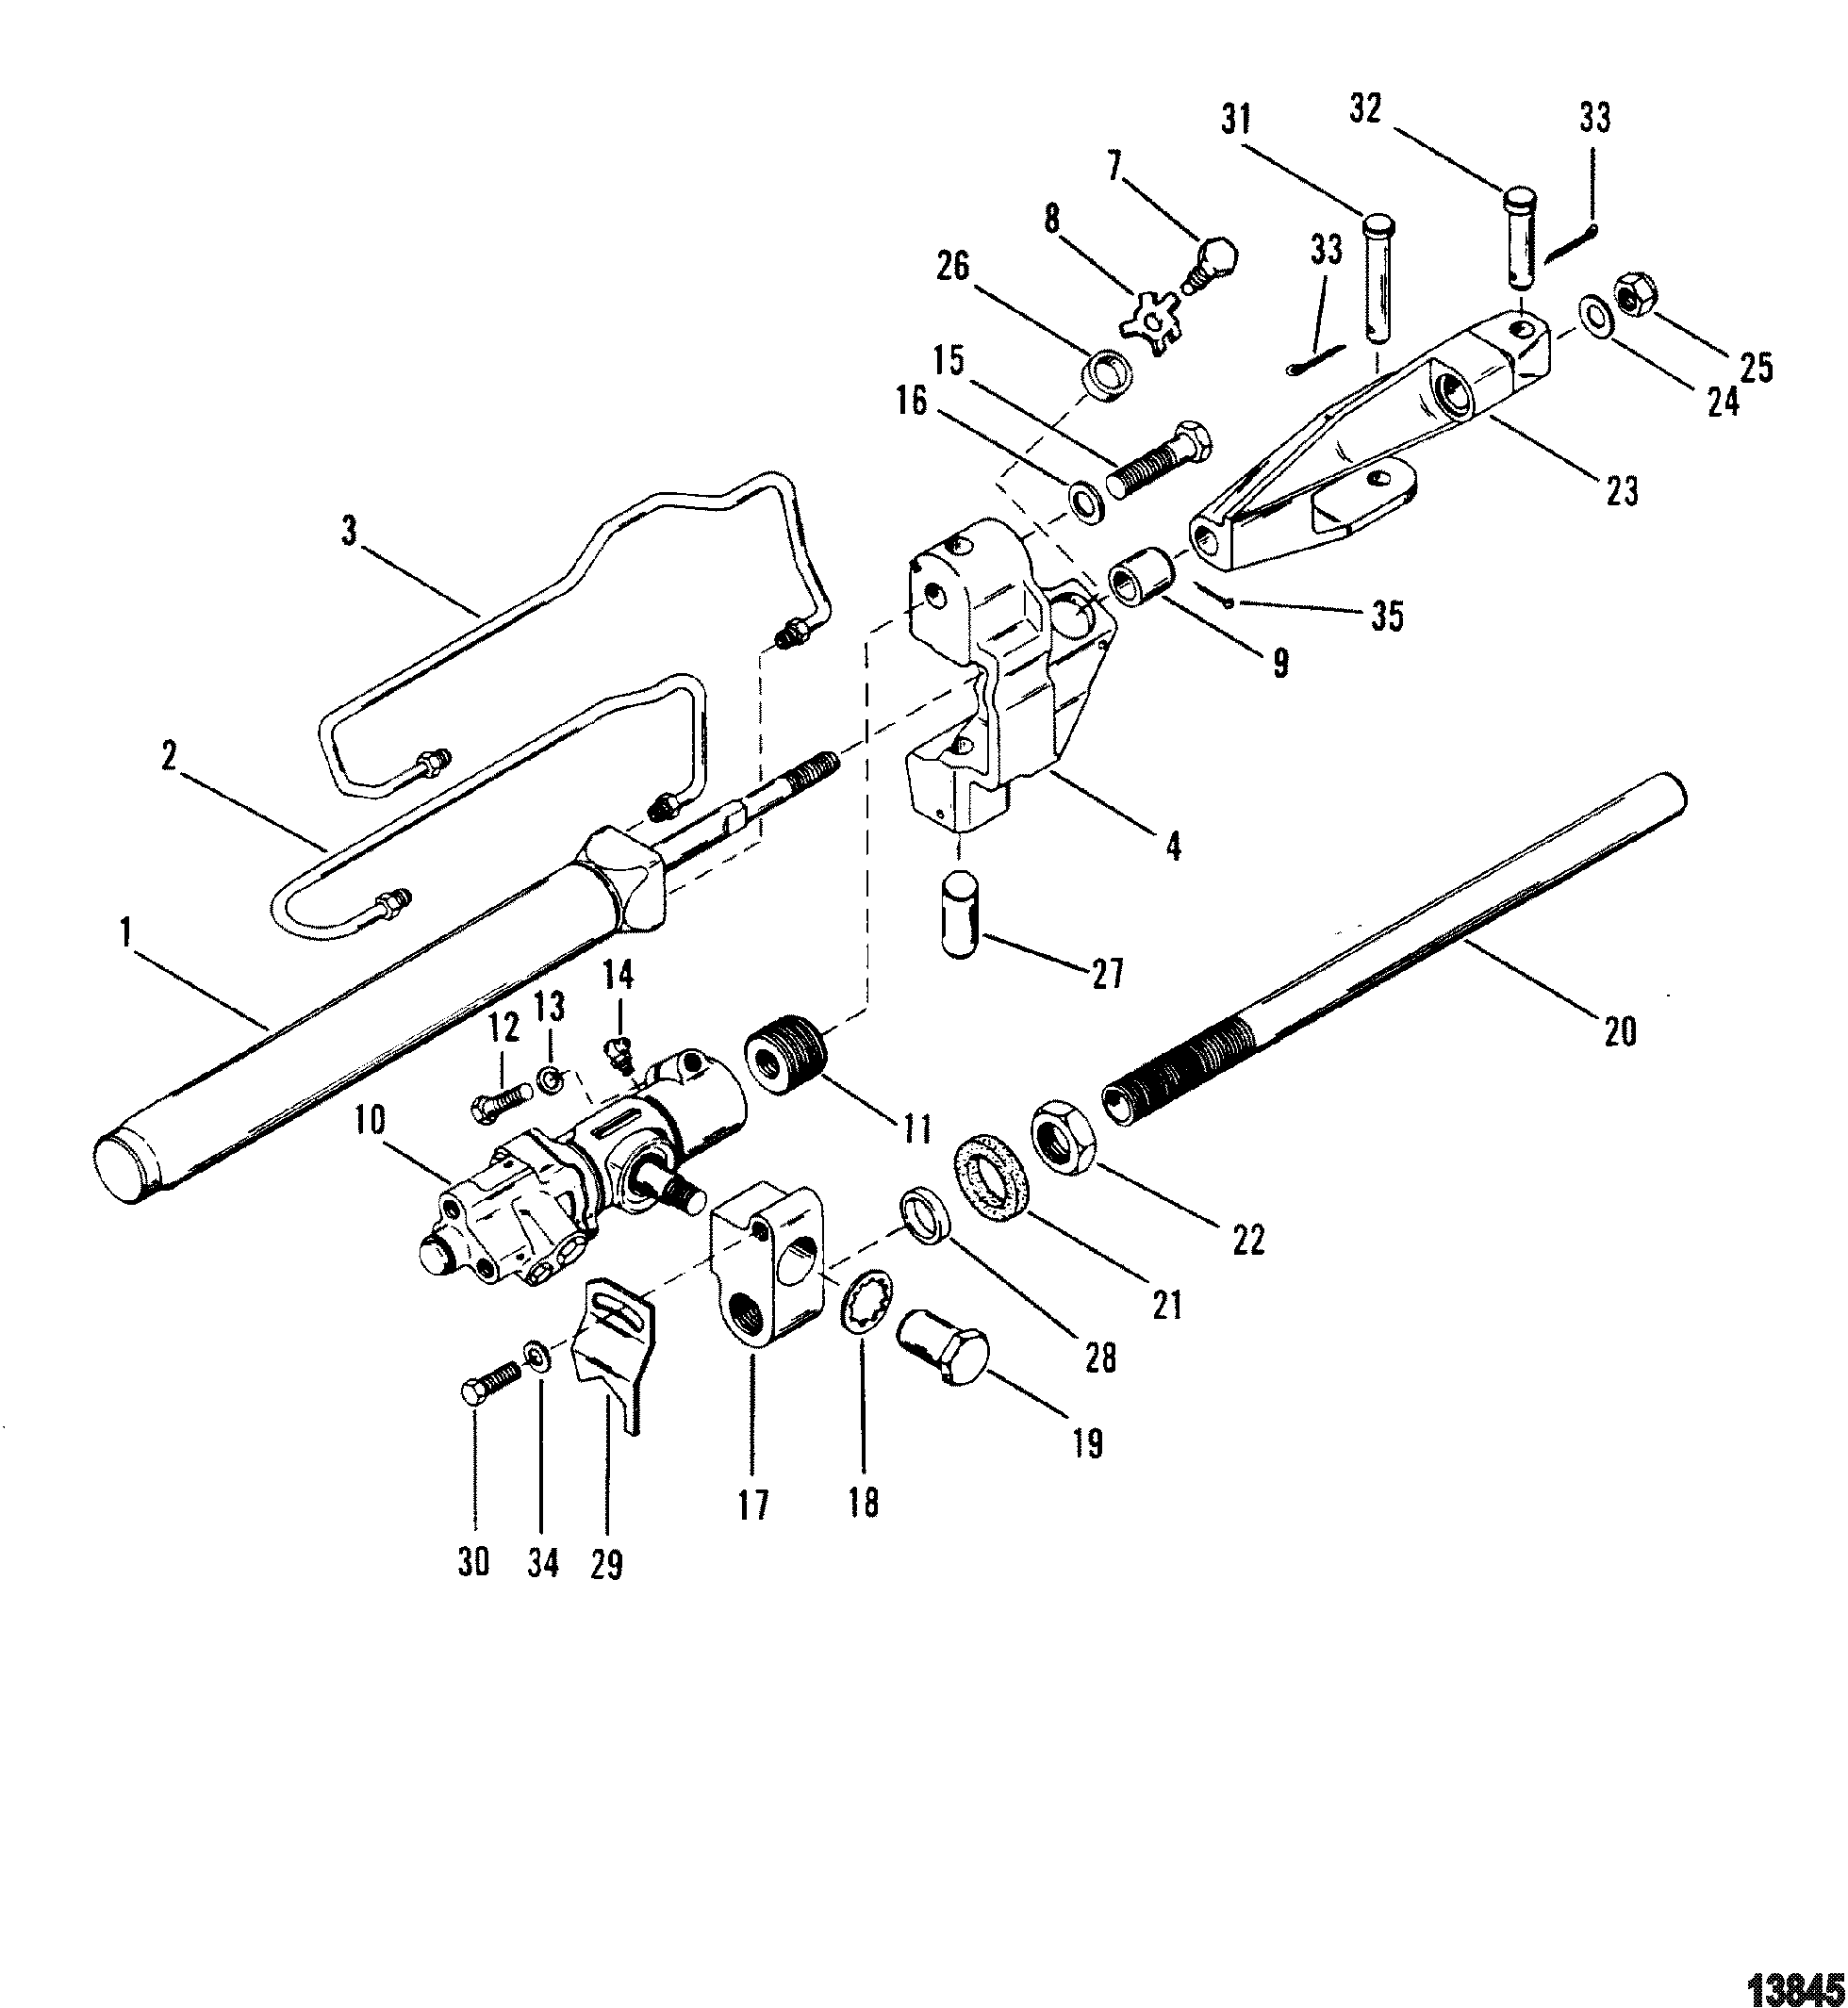 Power Steering Components For Mercruiser Alpha One Gen Ii